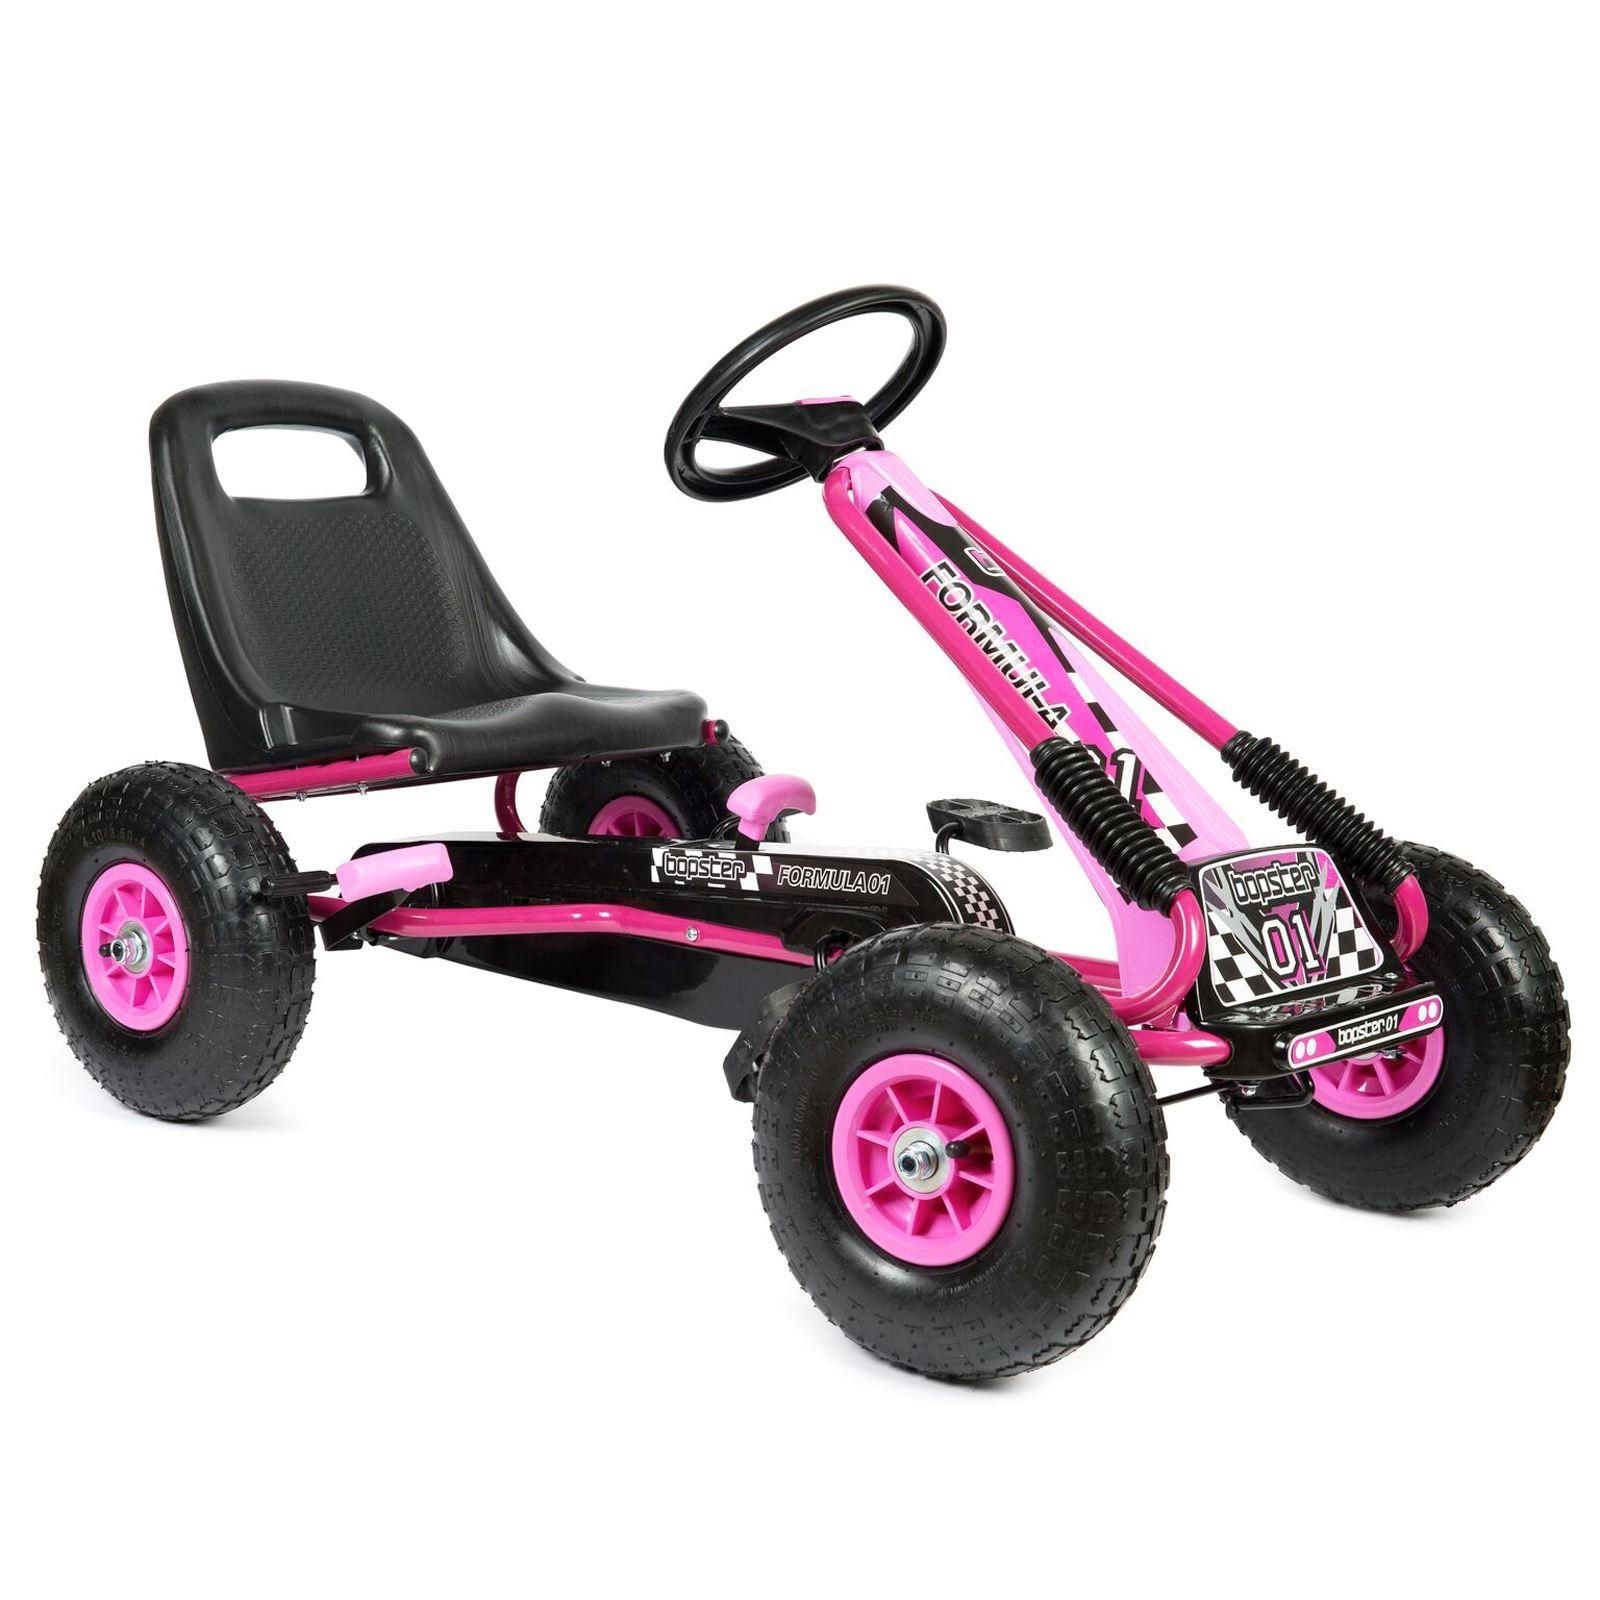 pedal-go-kart-with-inflatable-wheels-pink-main-view